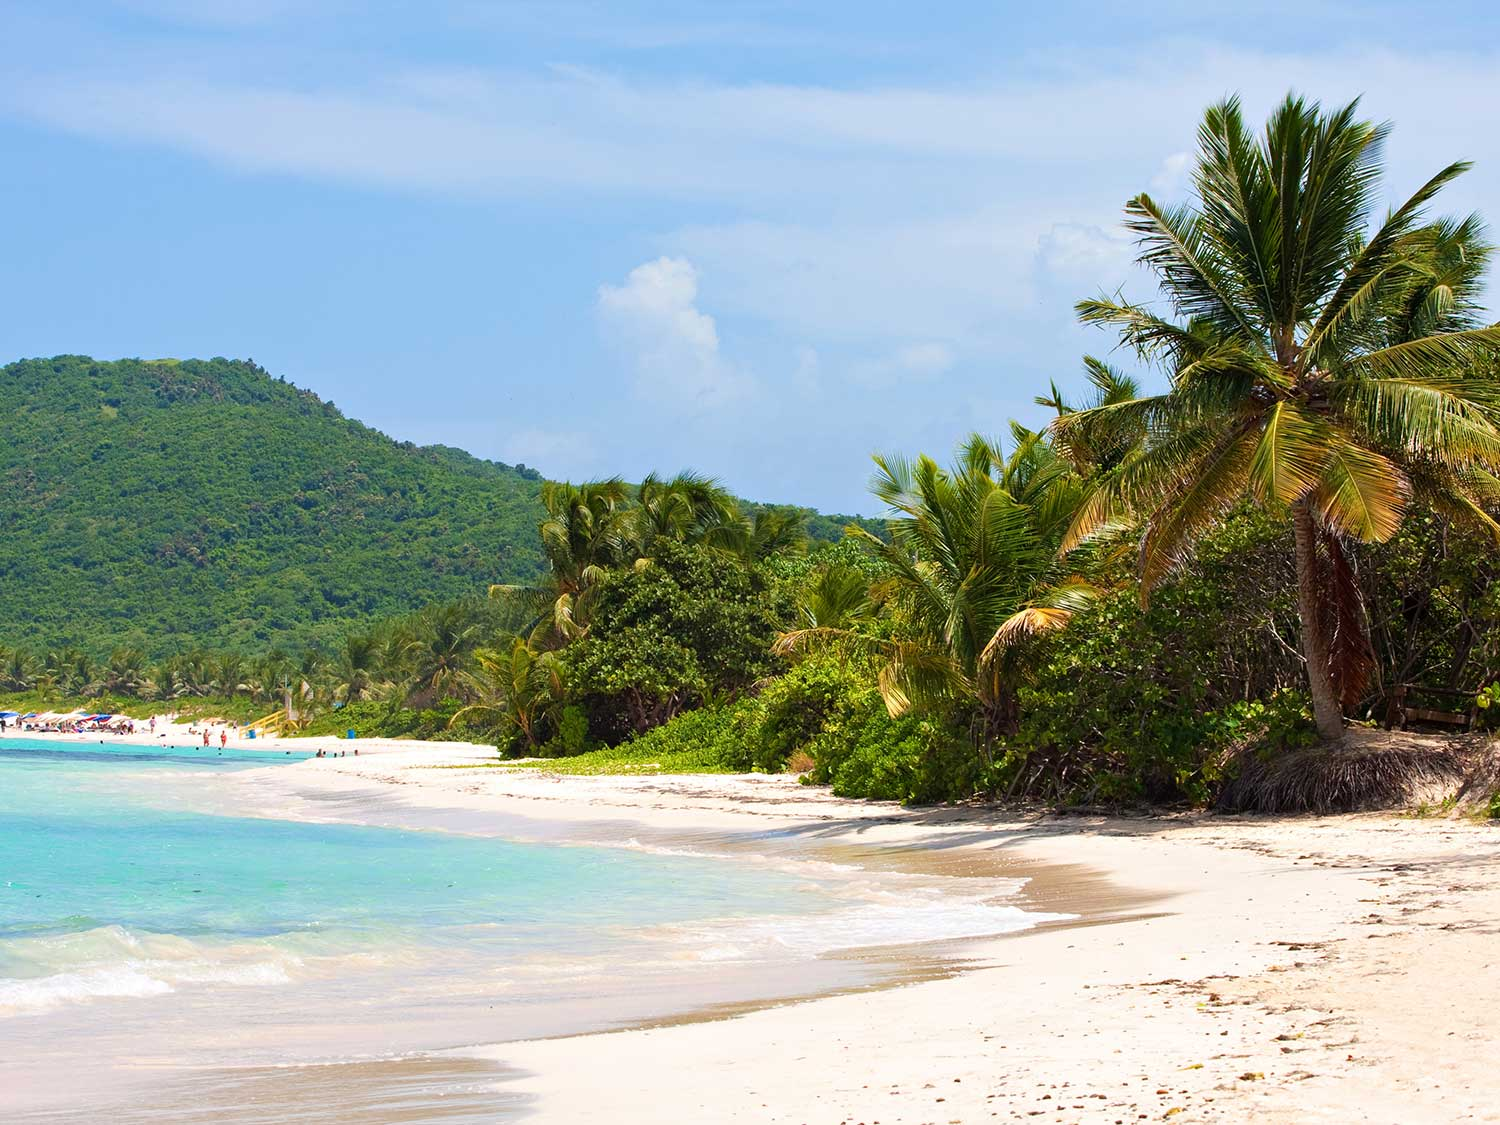 A tropical island beach lined with palms and lush greenery.